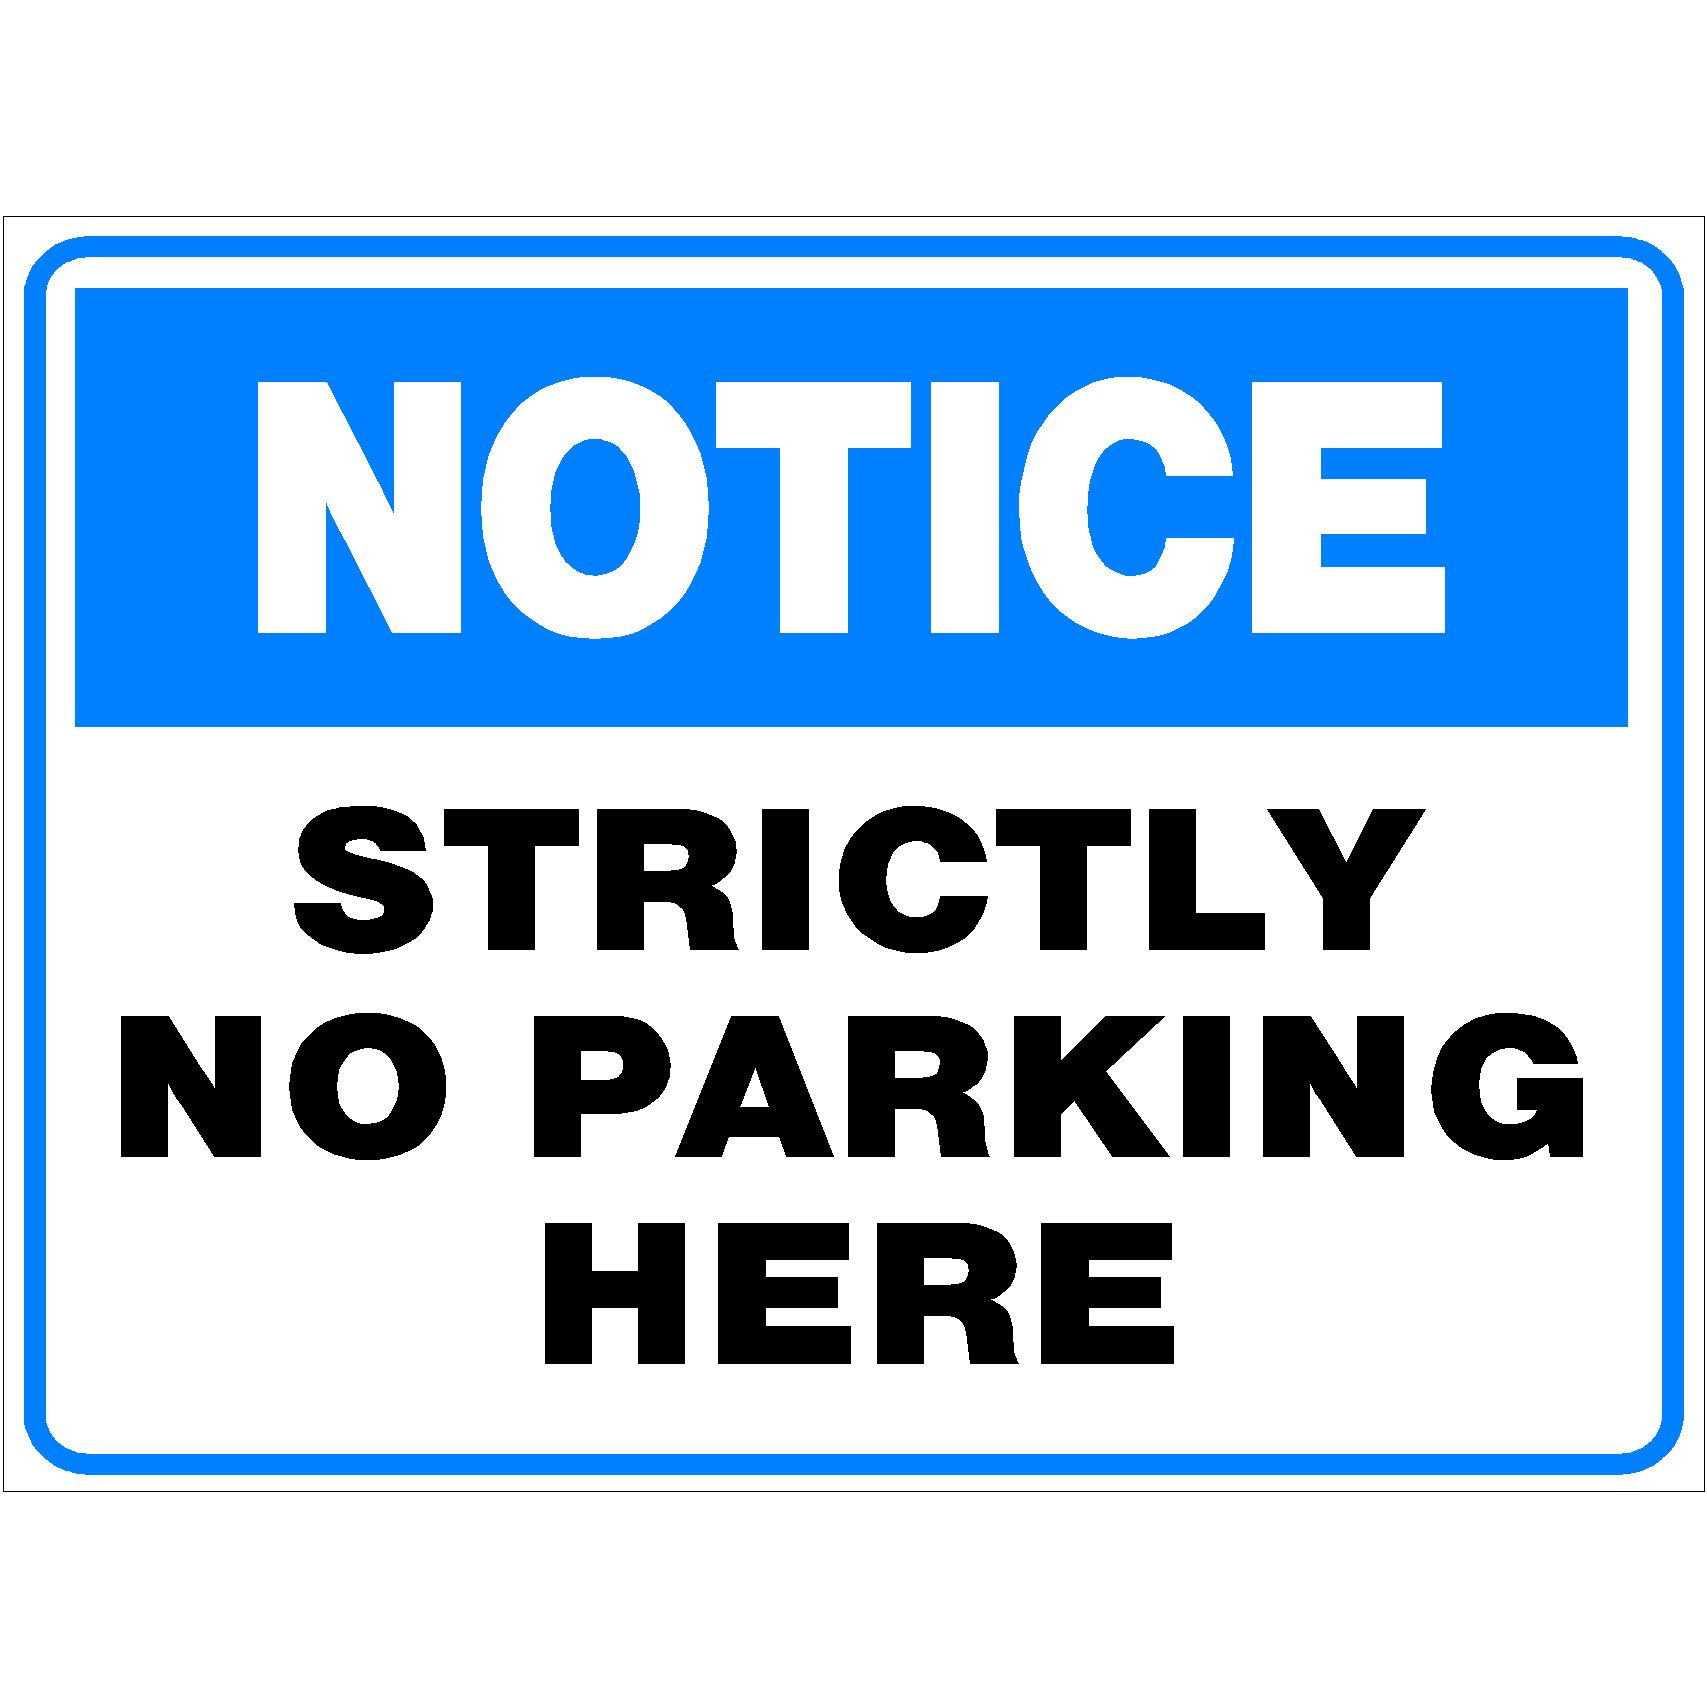 Notice Strictly No Parking Here